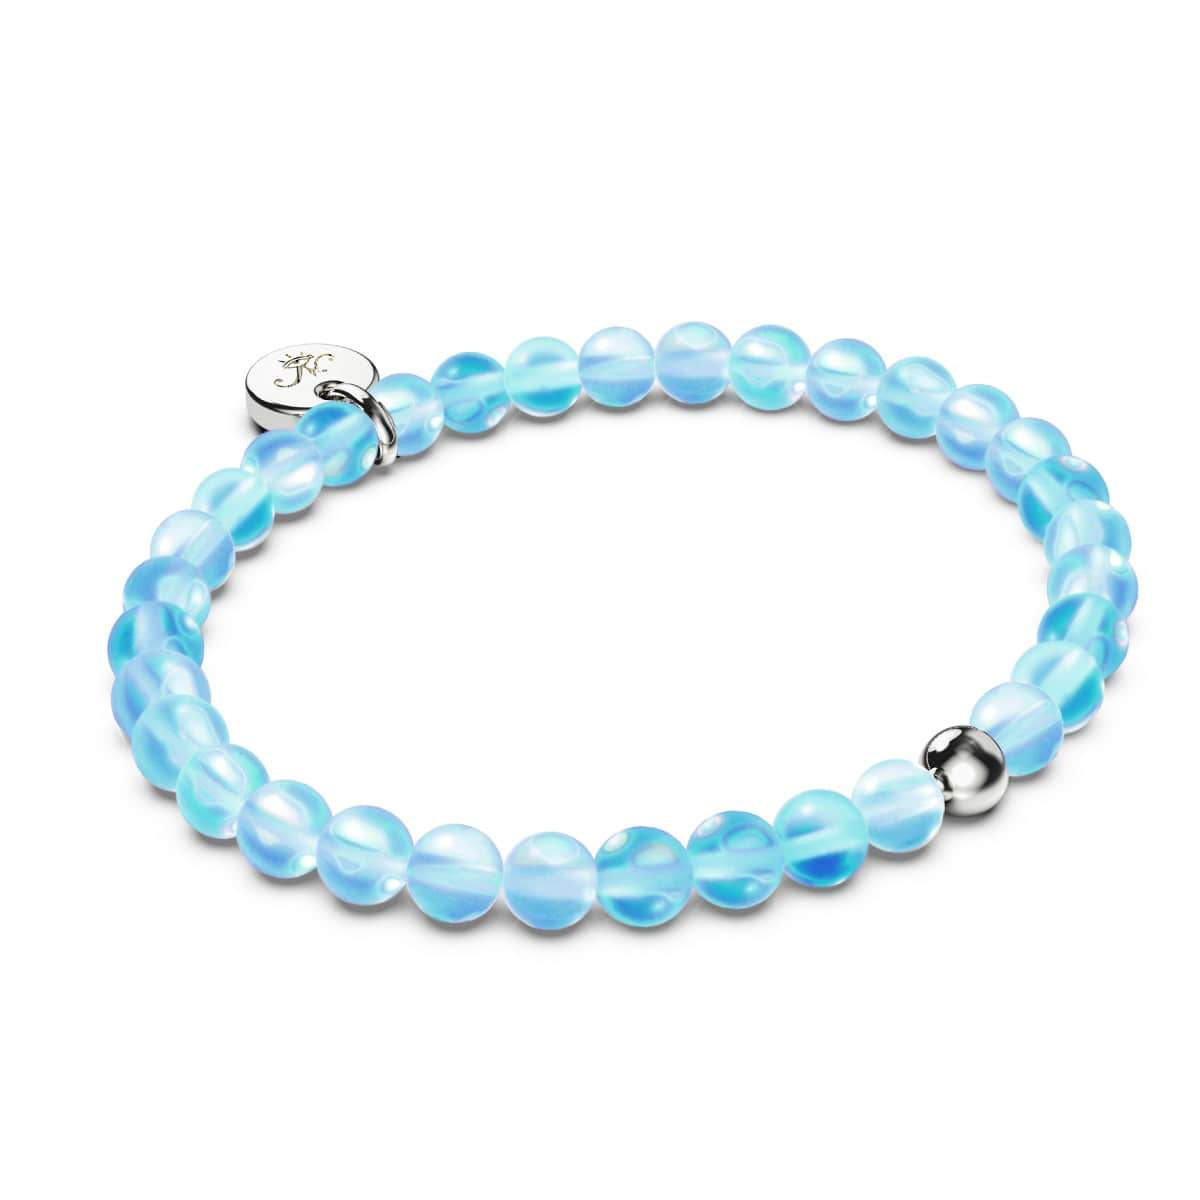 Aquamarine | Silver | Mermaid Glass Bead Bracelet